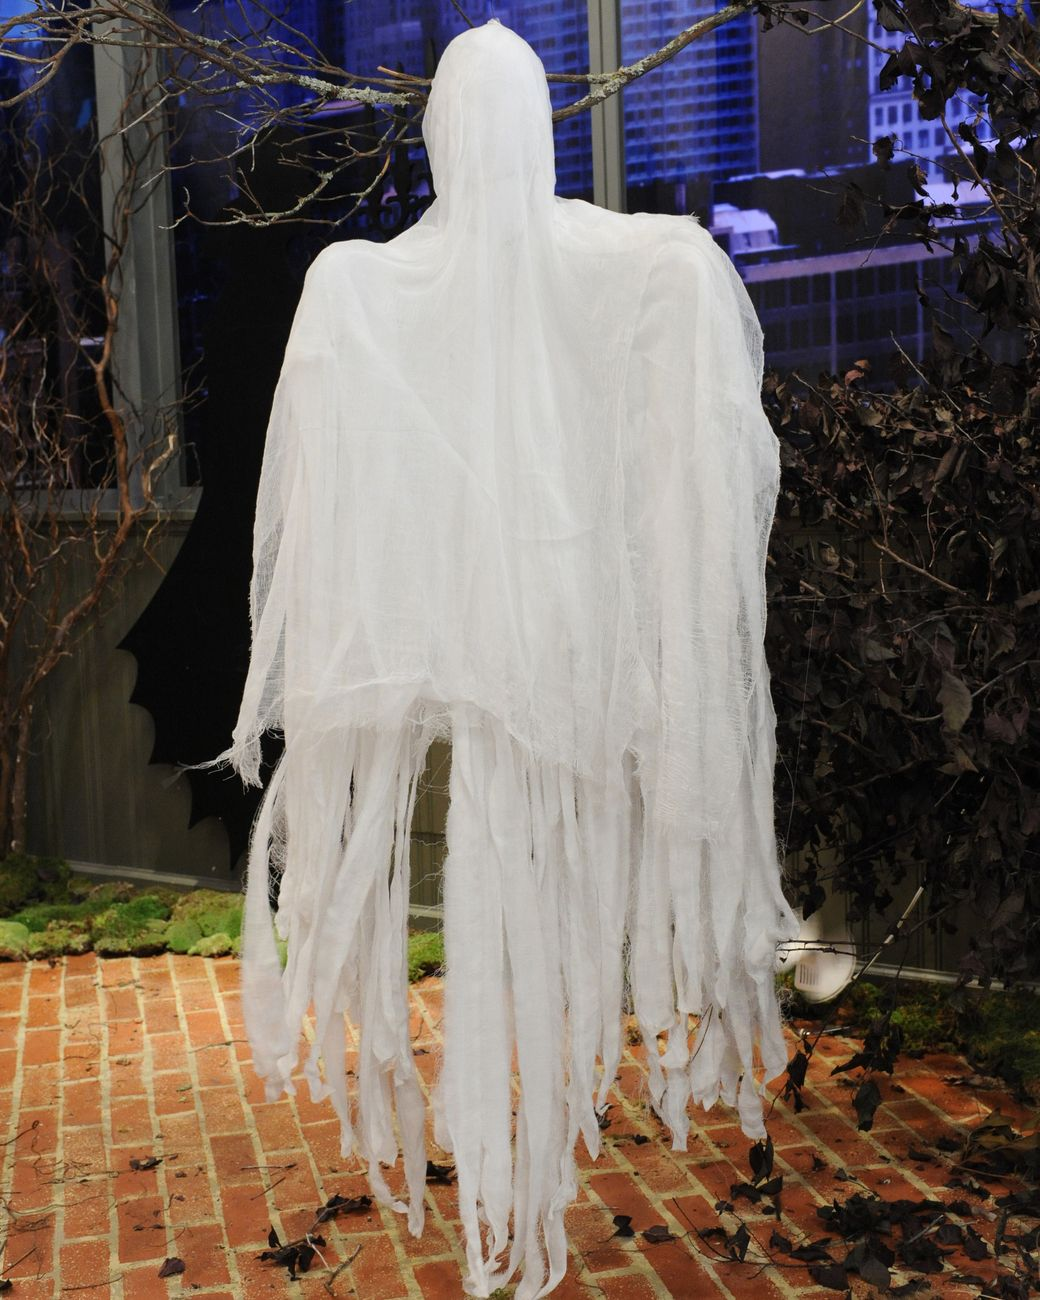 Cheesecloth Ghosts | Cheesecloth ghost, Halloween scene and Cheesecloth